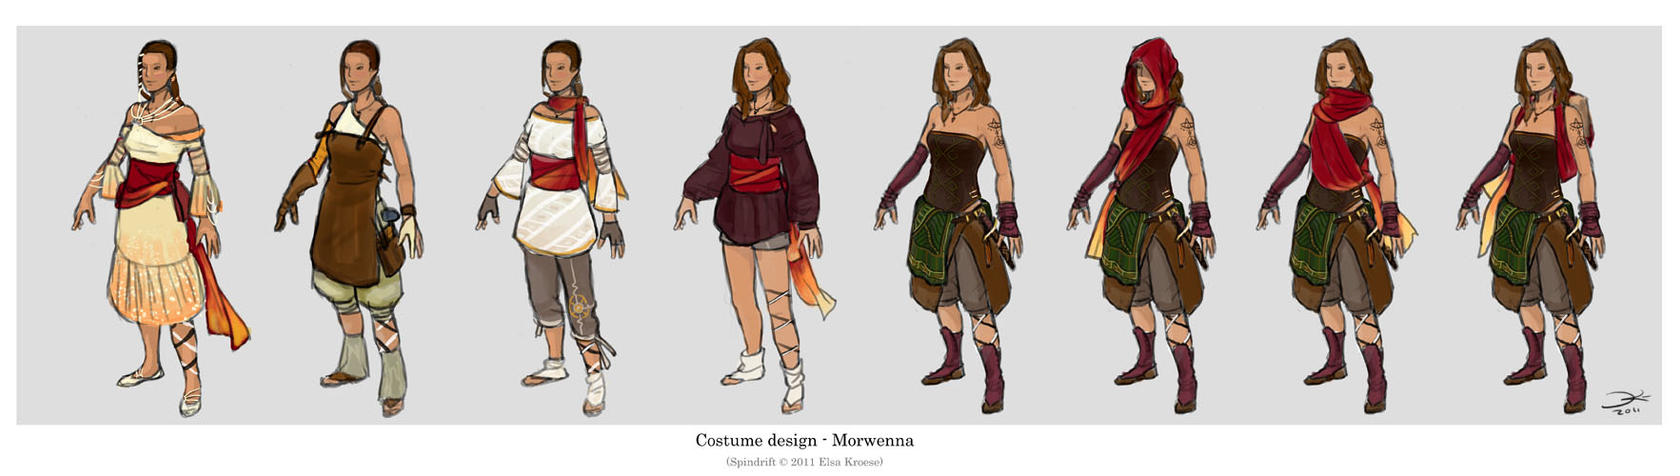 Spindrift - Costume designs1 by ElsaKroese